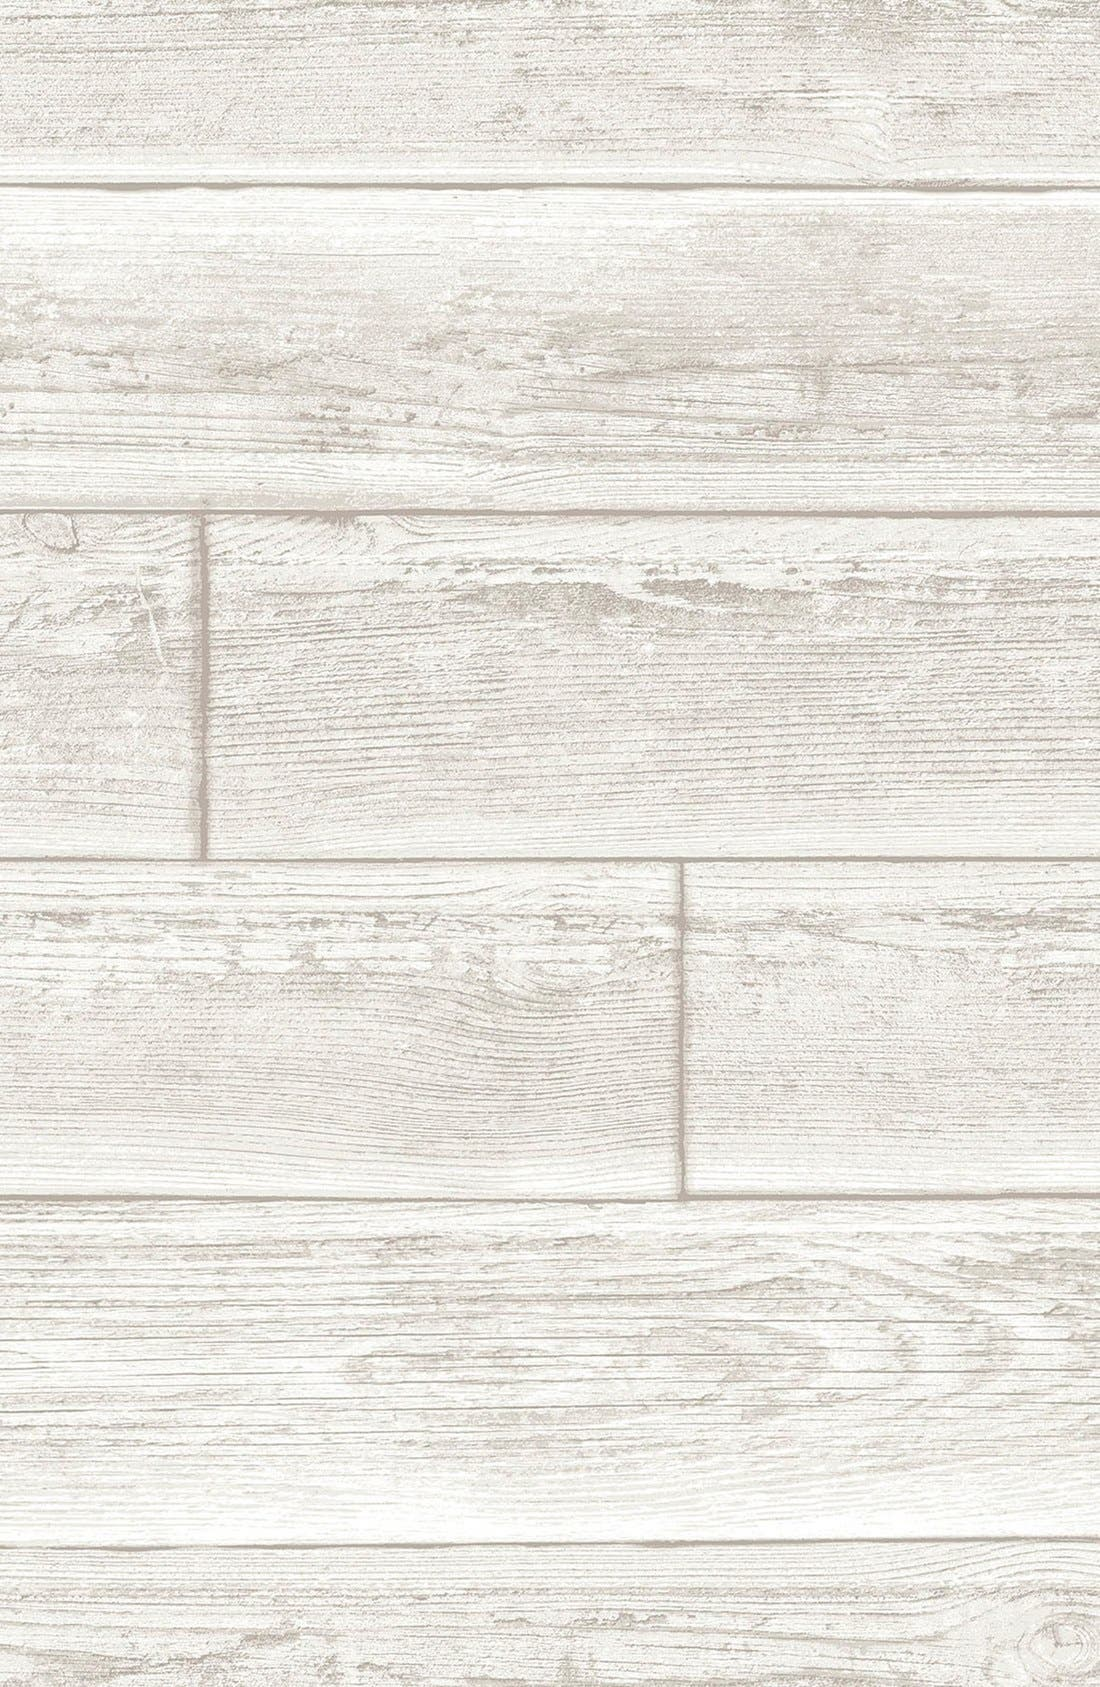 Serene  Peel & Stick Vinyl Wallpaper,                             Main thumbnail 1, color,                             Grey - Serene Cream